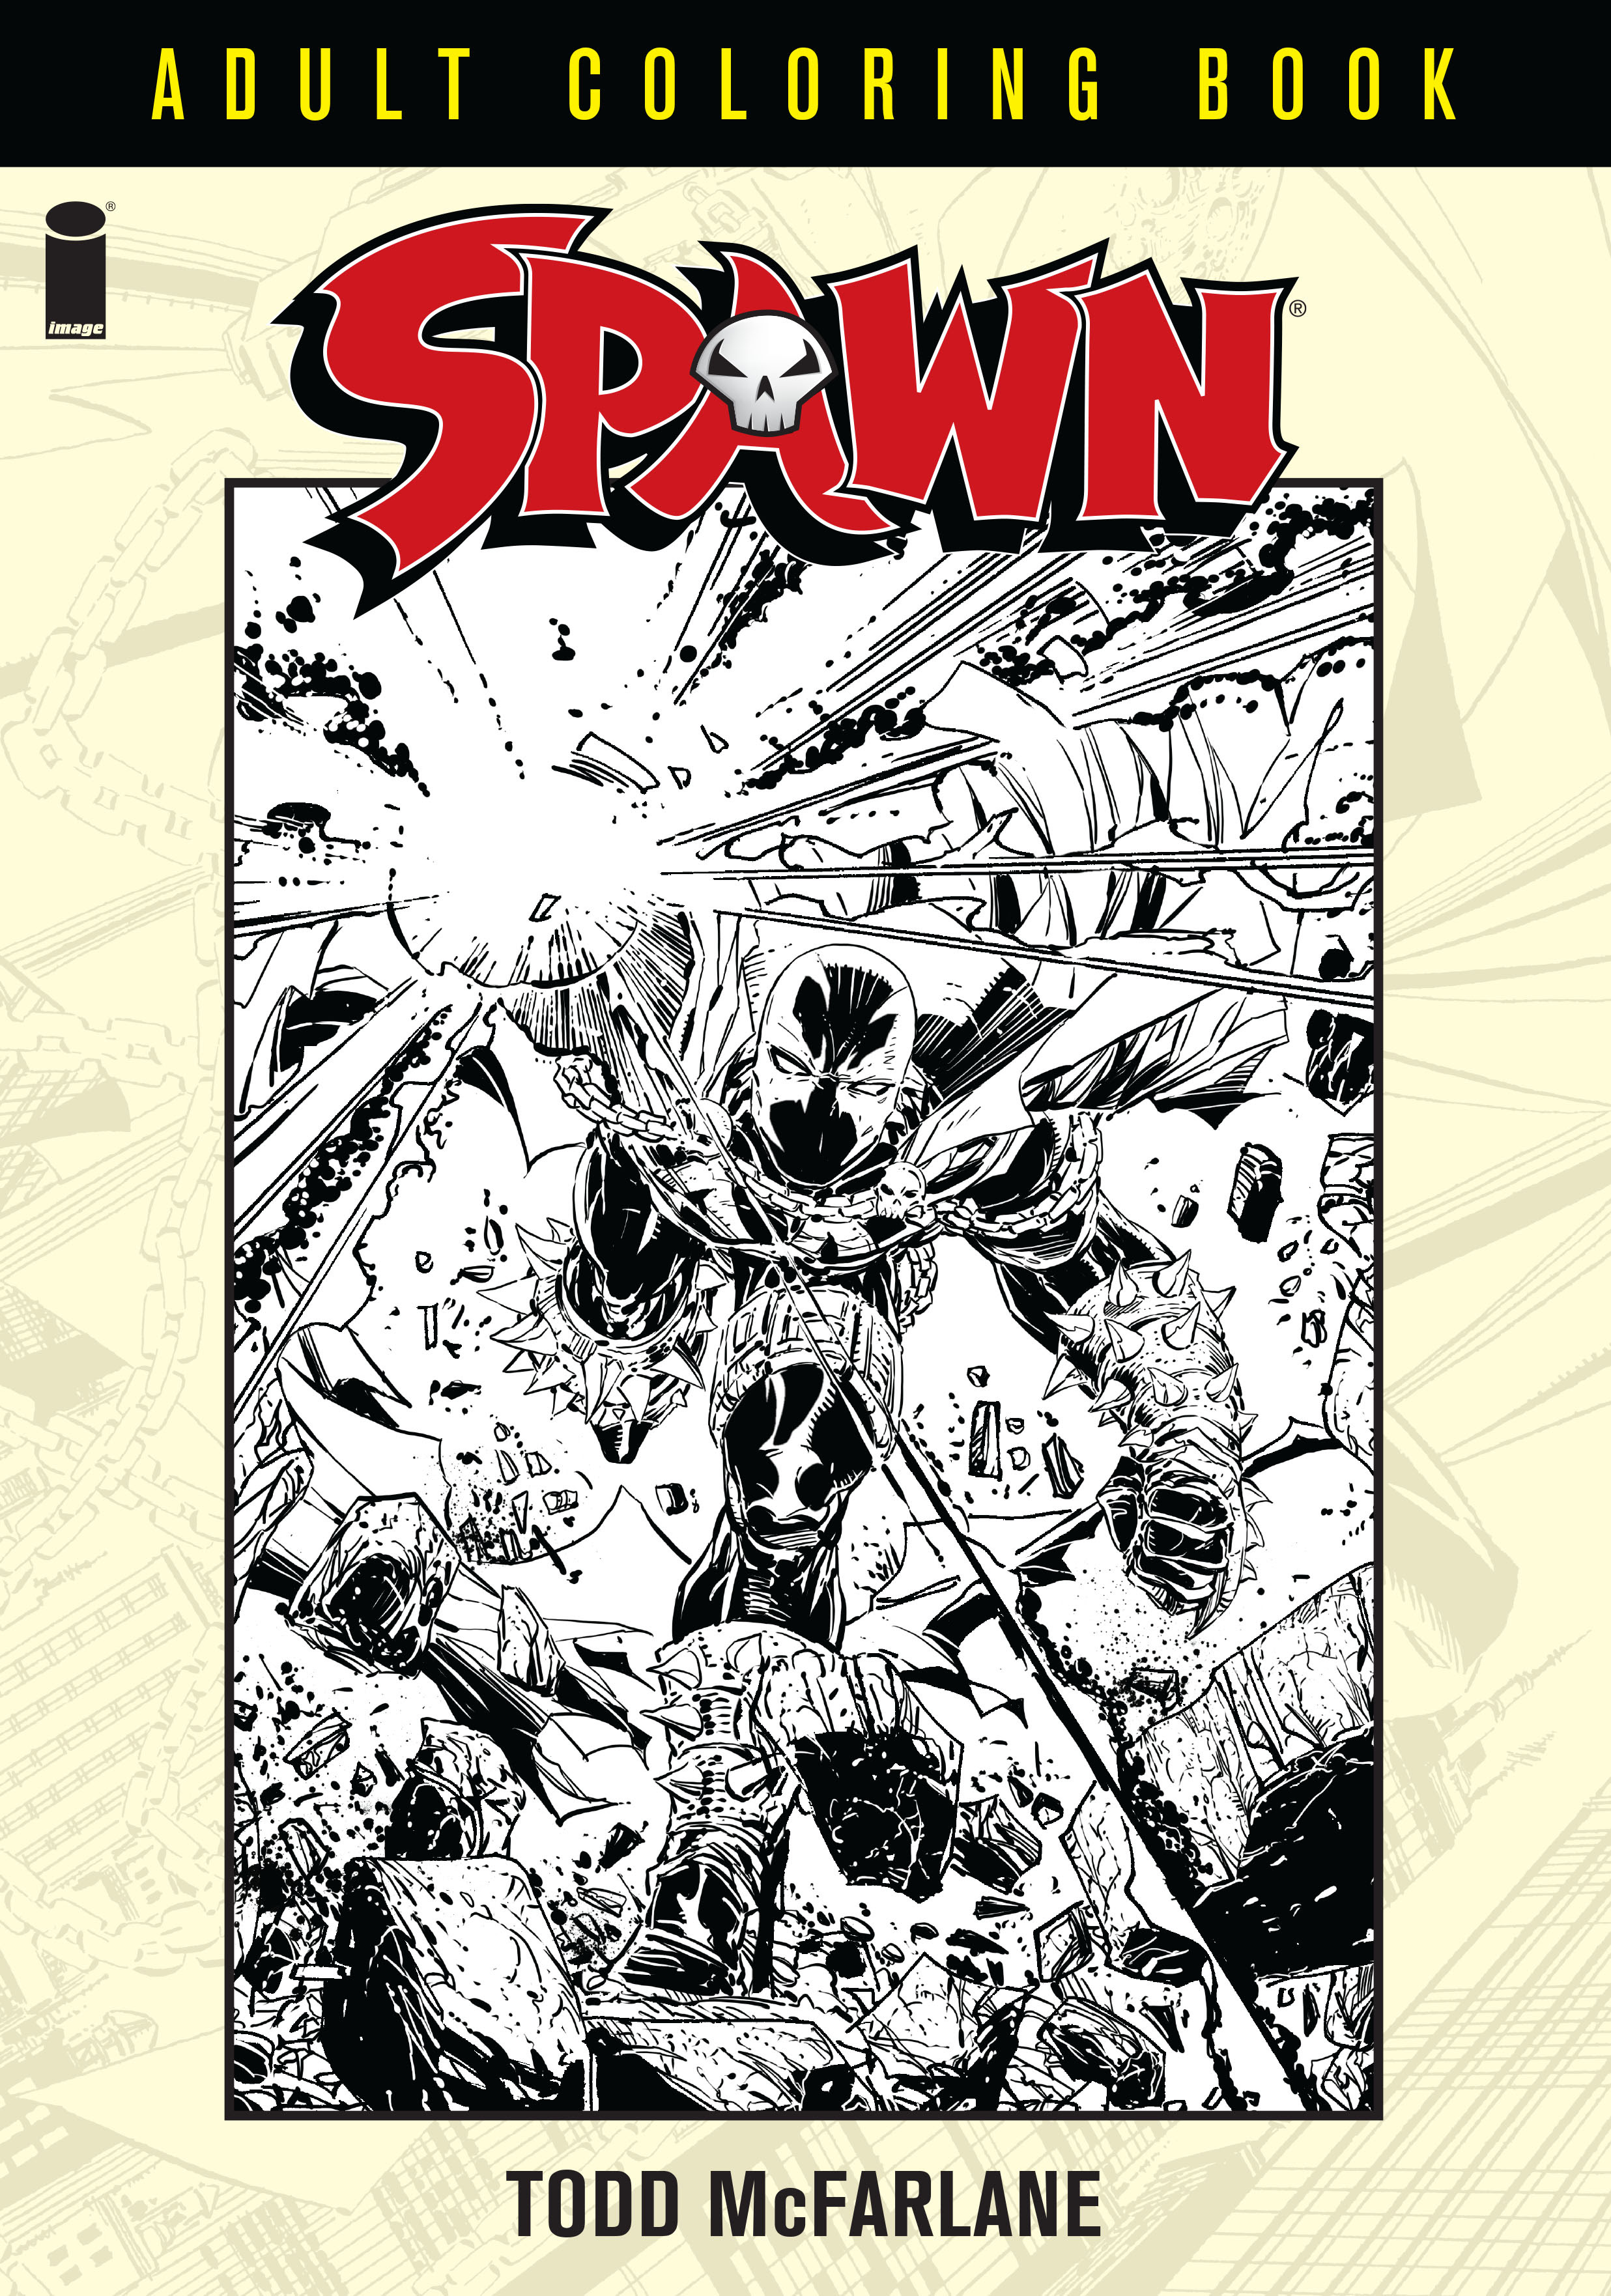 Spawn Coloring Book Coming from Image Comics - Bounding Into ...